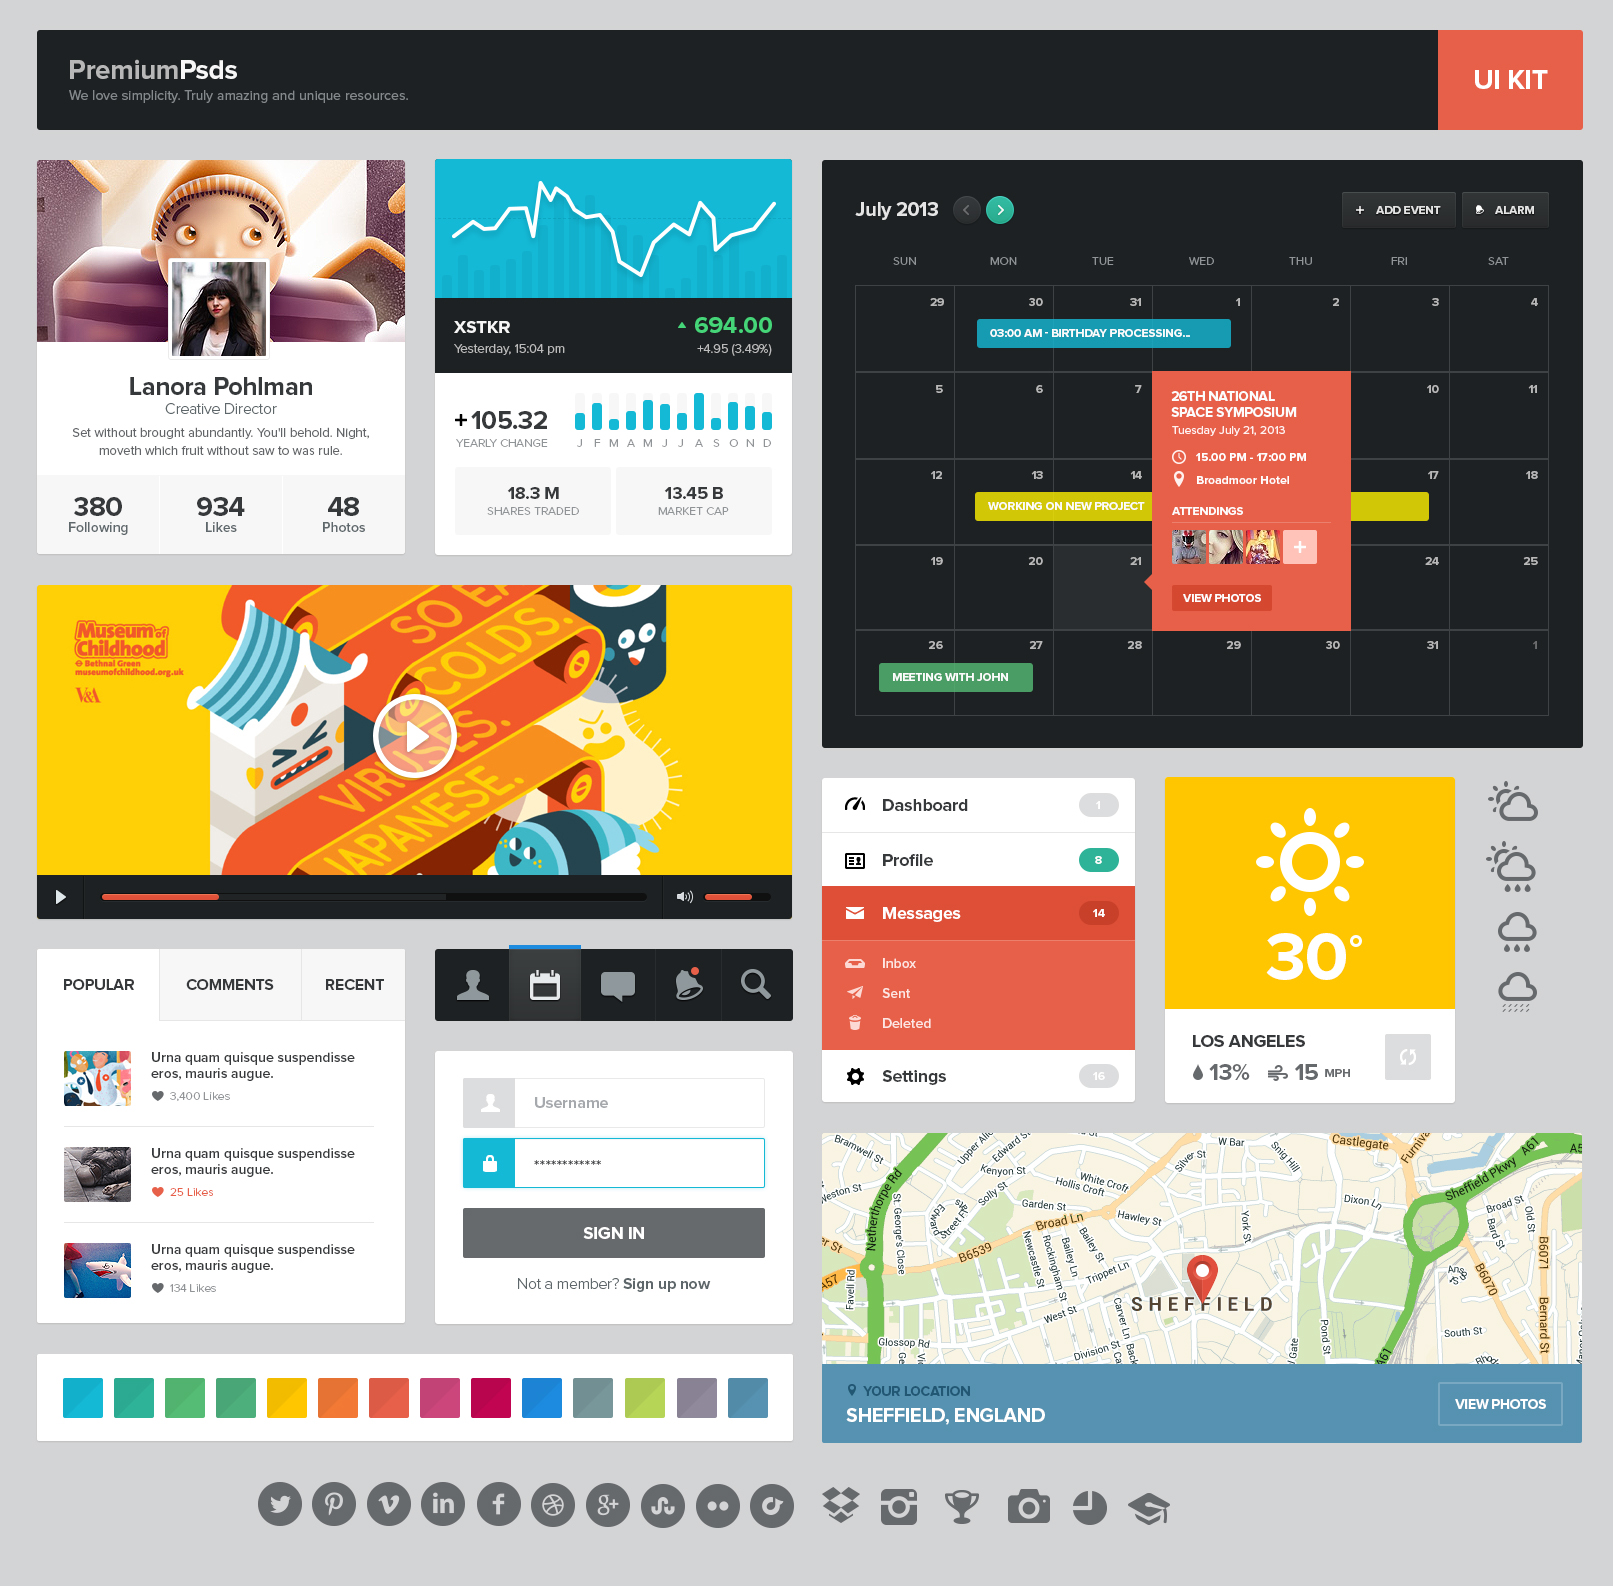 Web Design Software Best: Freebie PSD UI Kit